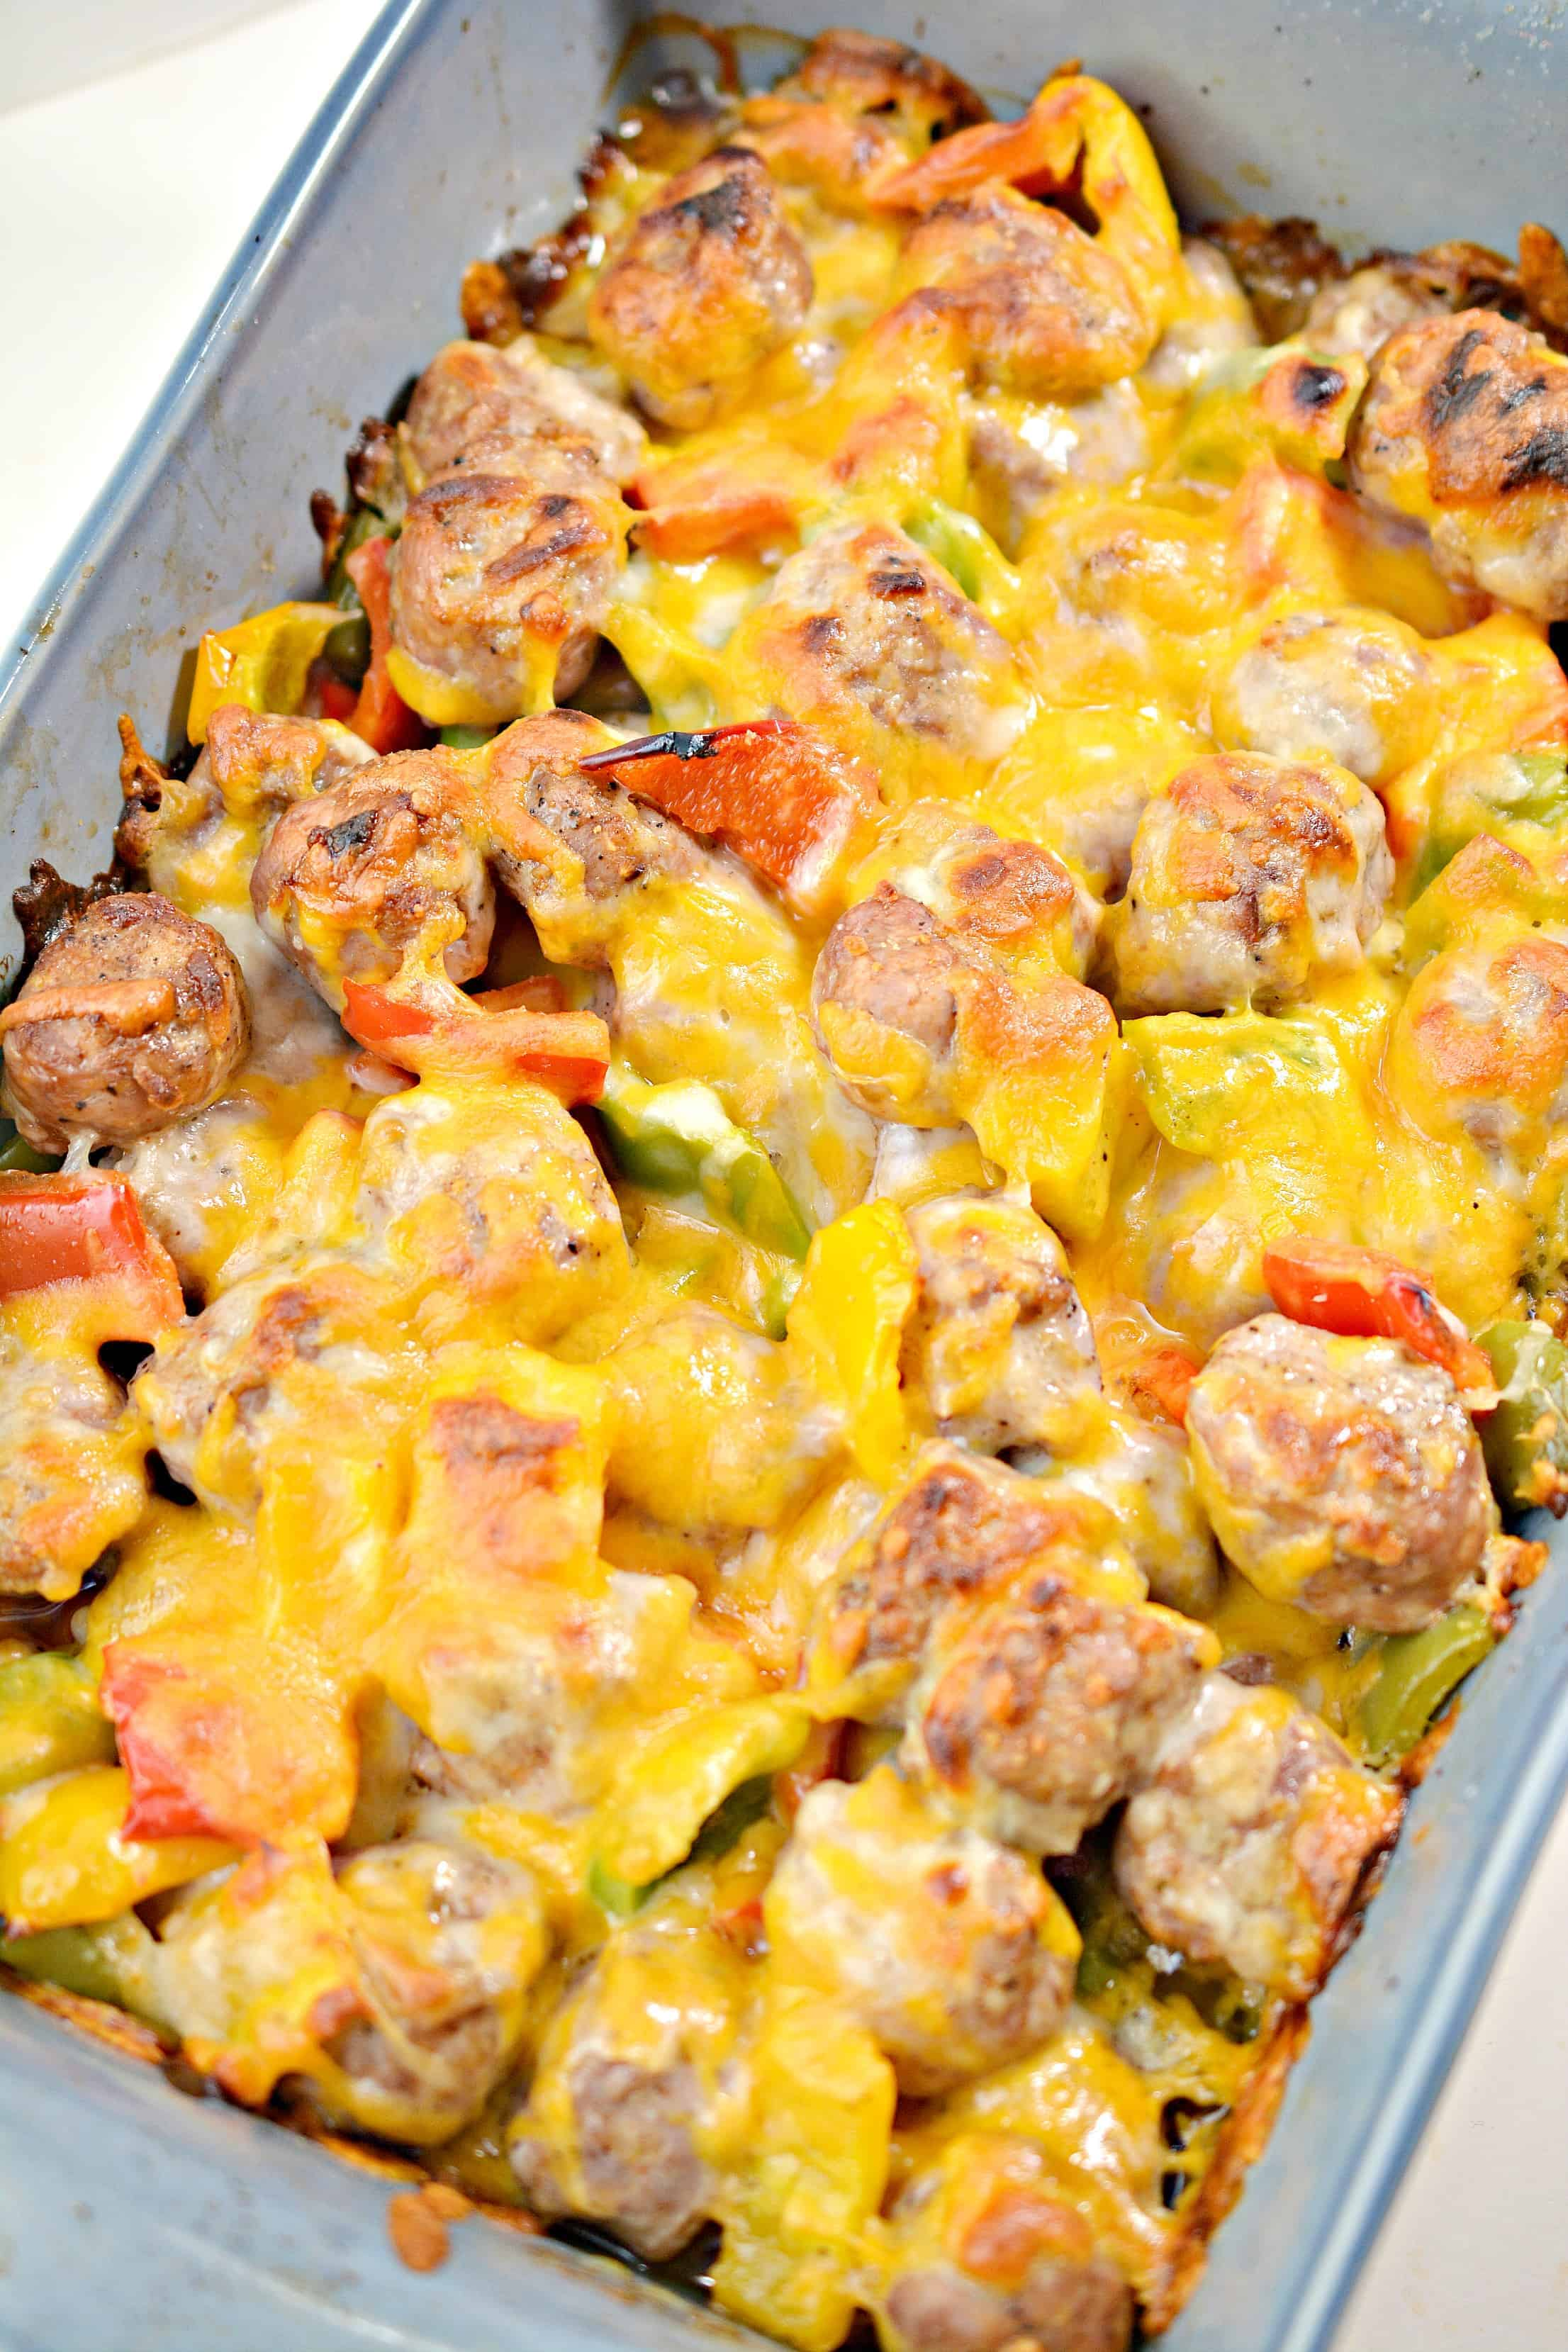 sausage and peppers bake